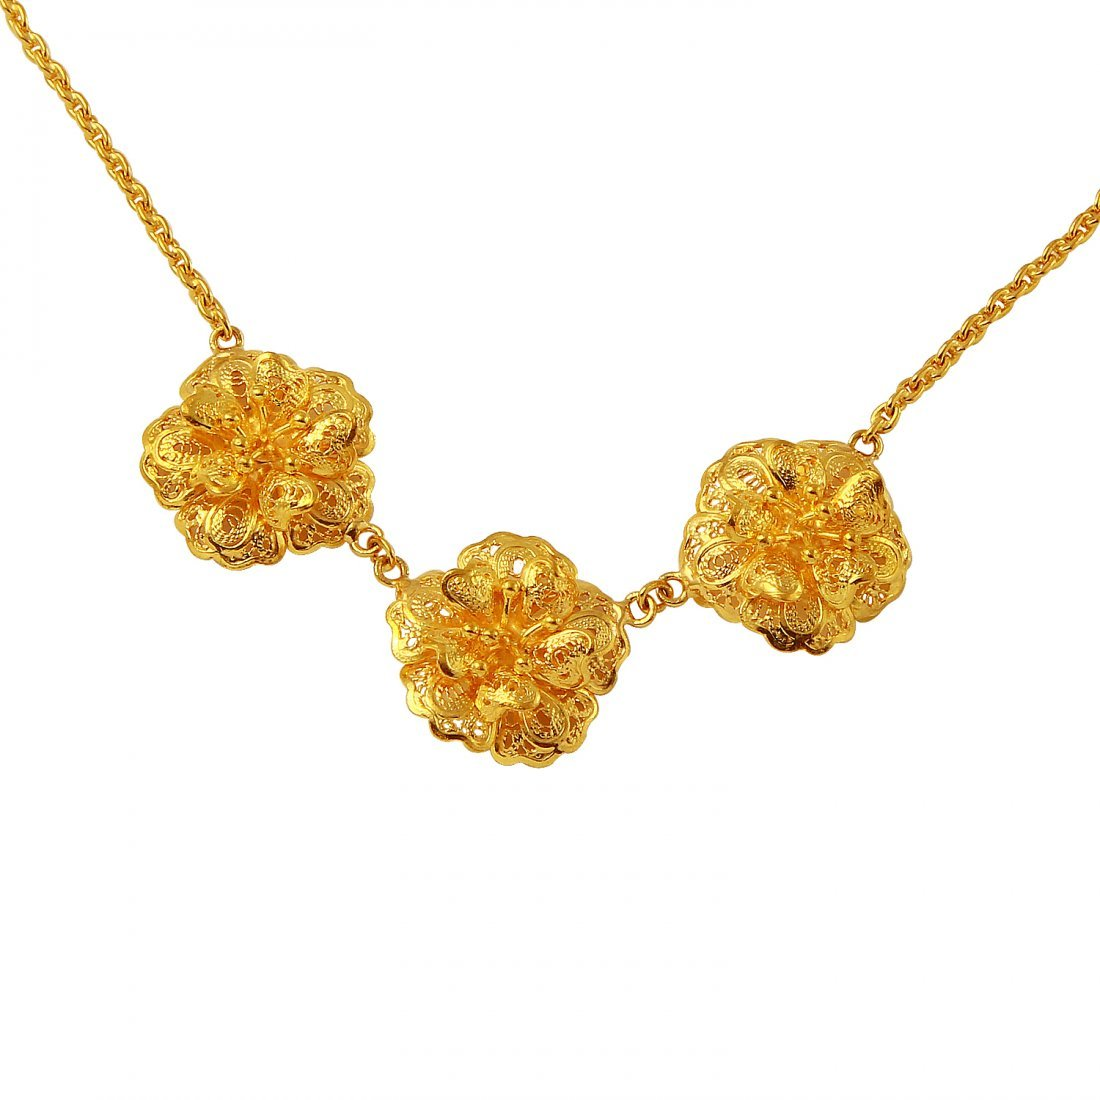 Ladies 23K Yellow Gold Necklace